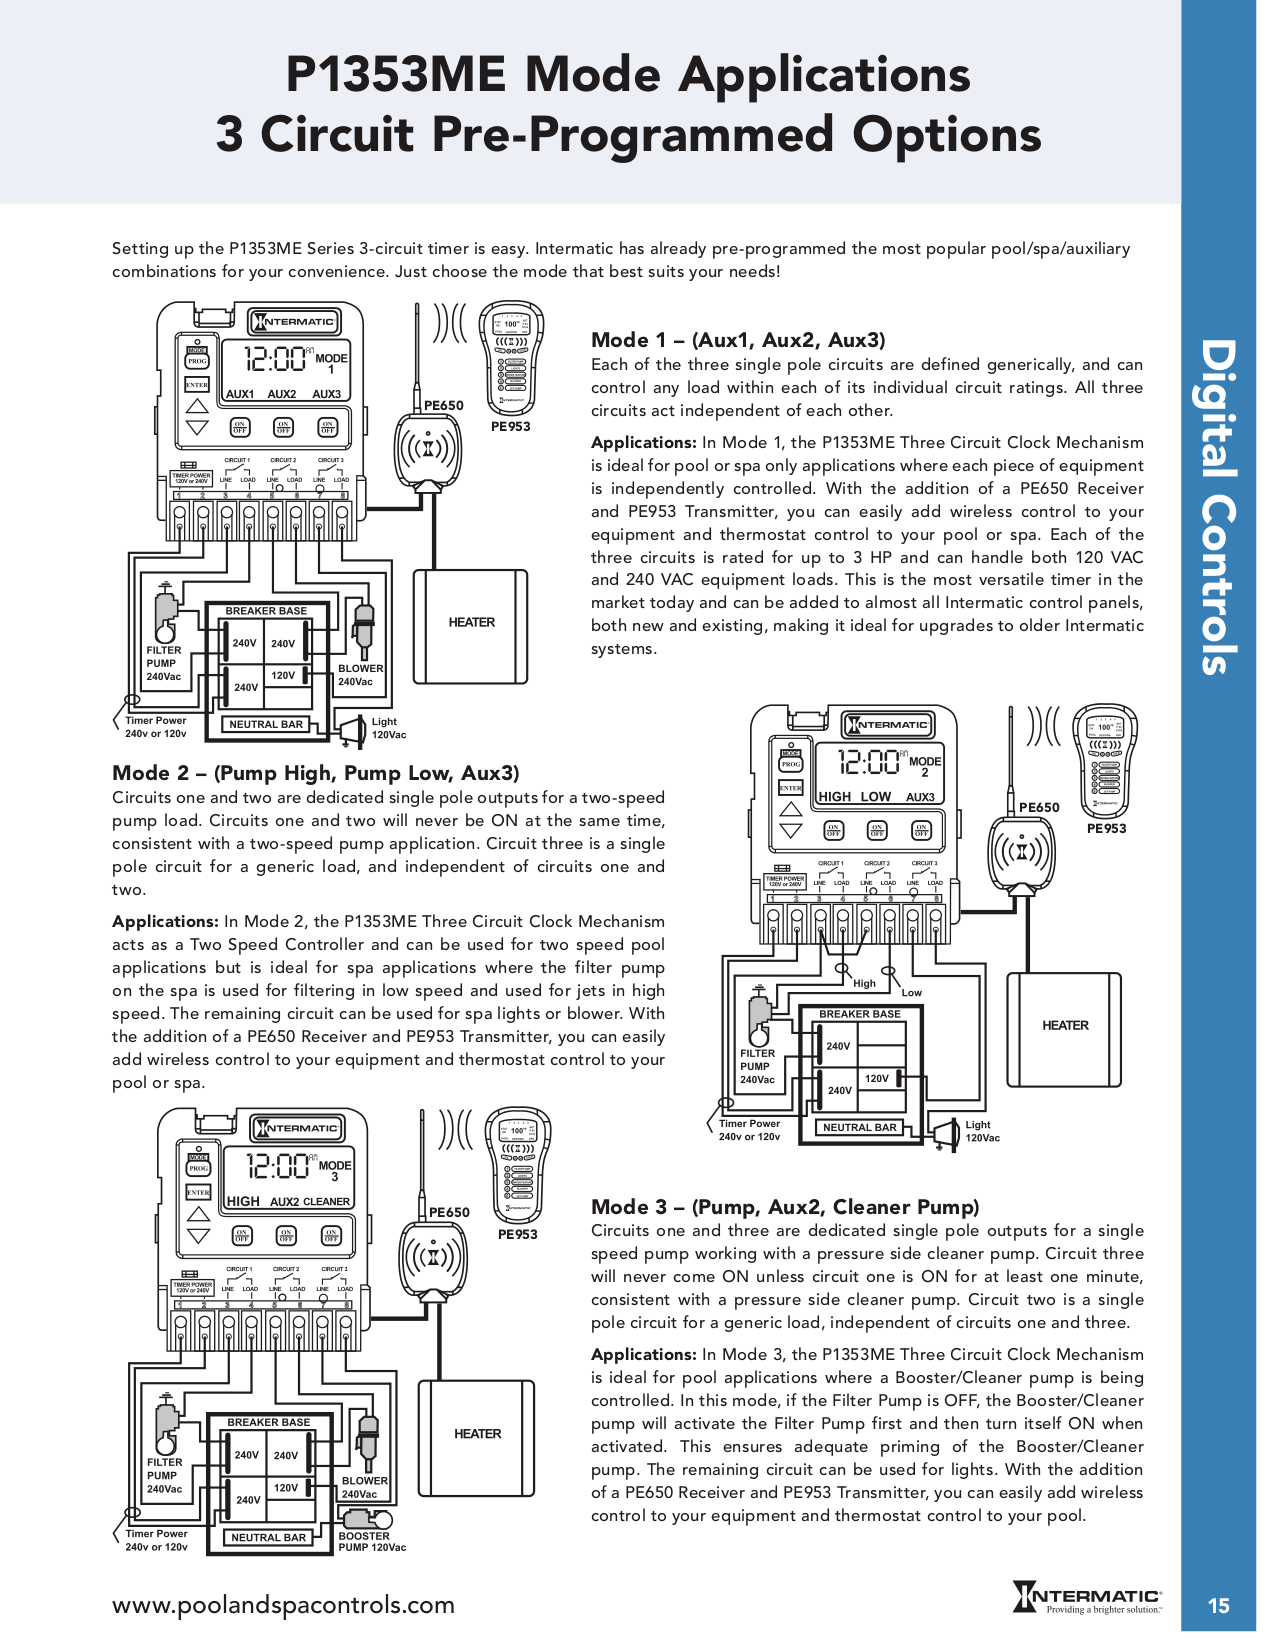 Intermatic P1353 wiring diagrams.pdf 1 pdf manual for intermatic other p1353me three circuit clock intermatic p1353me 240v wiring diagram at creativeand.co